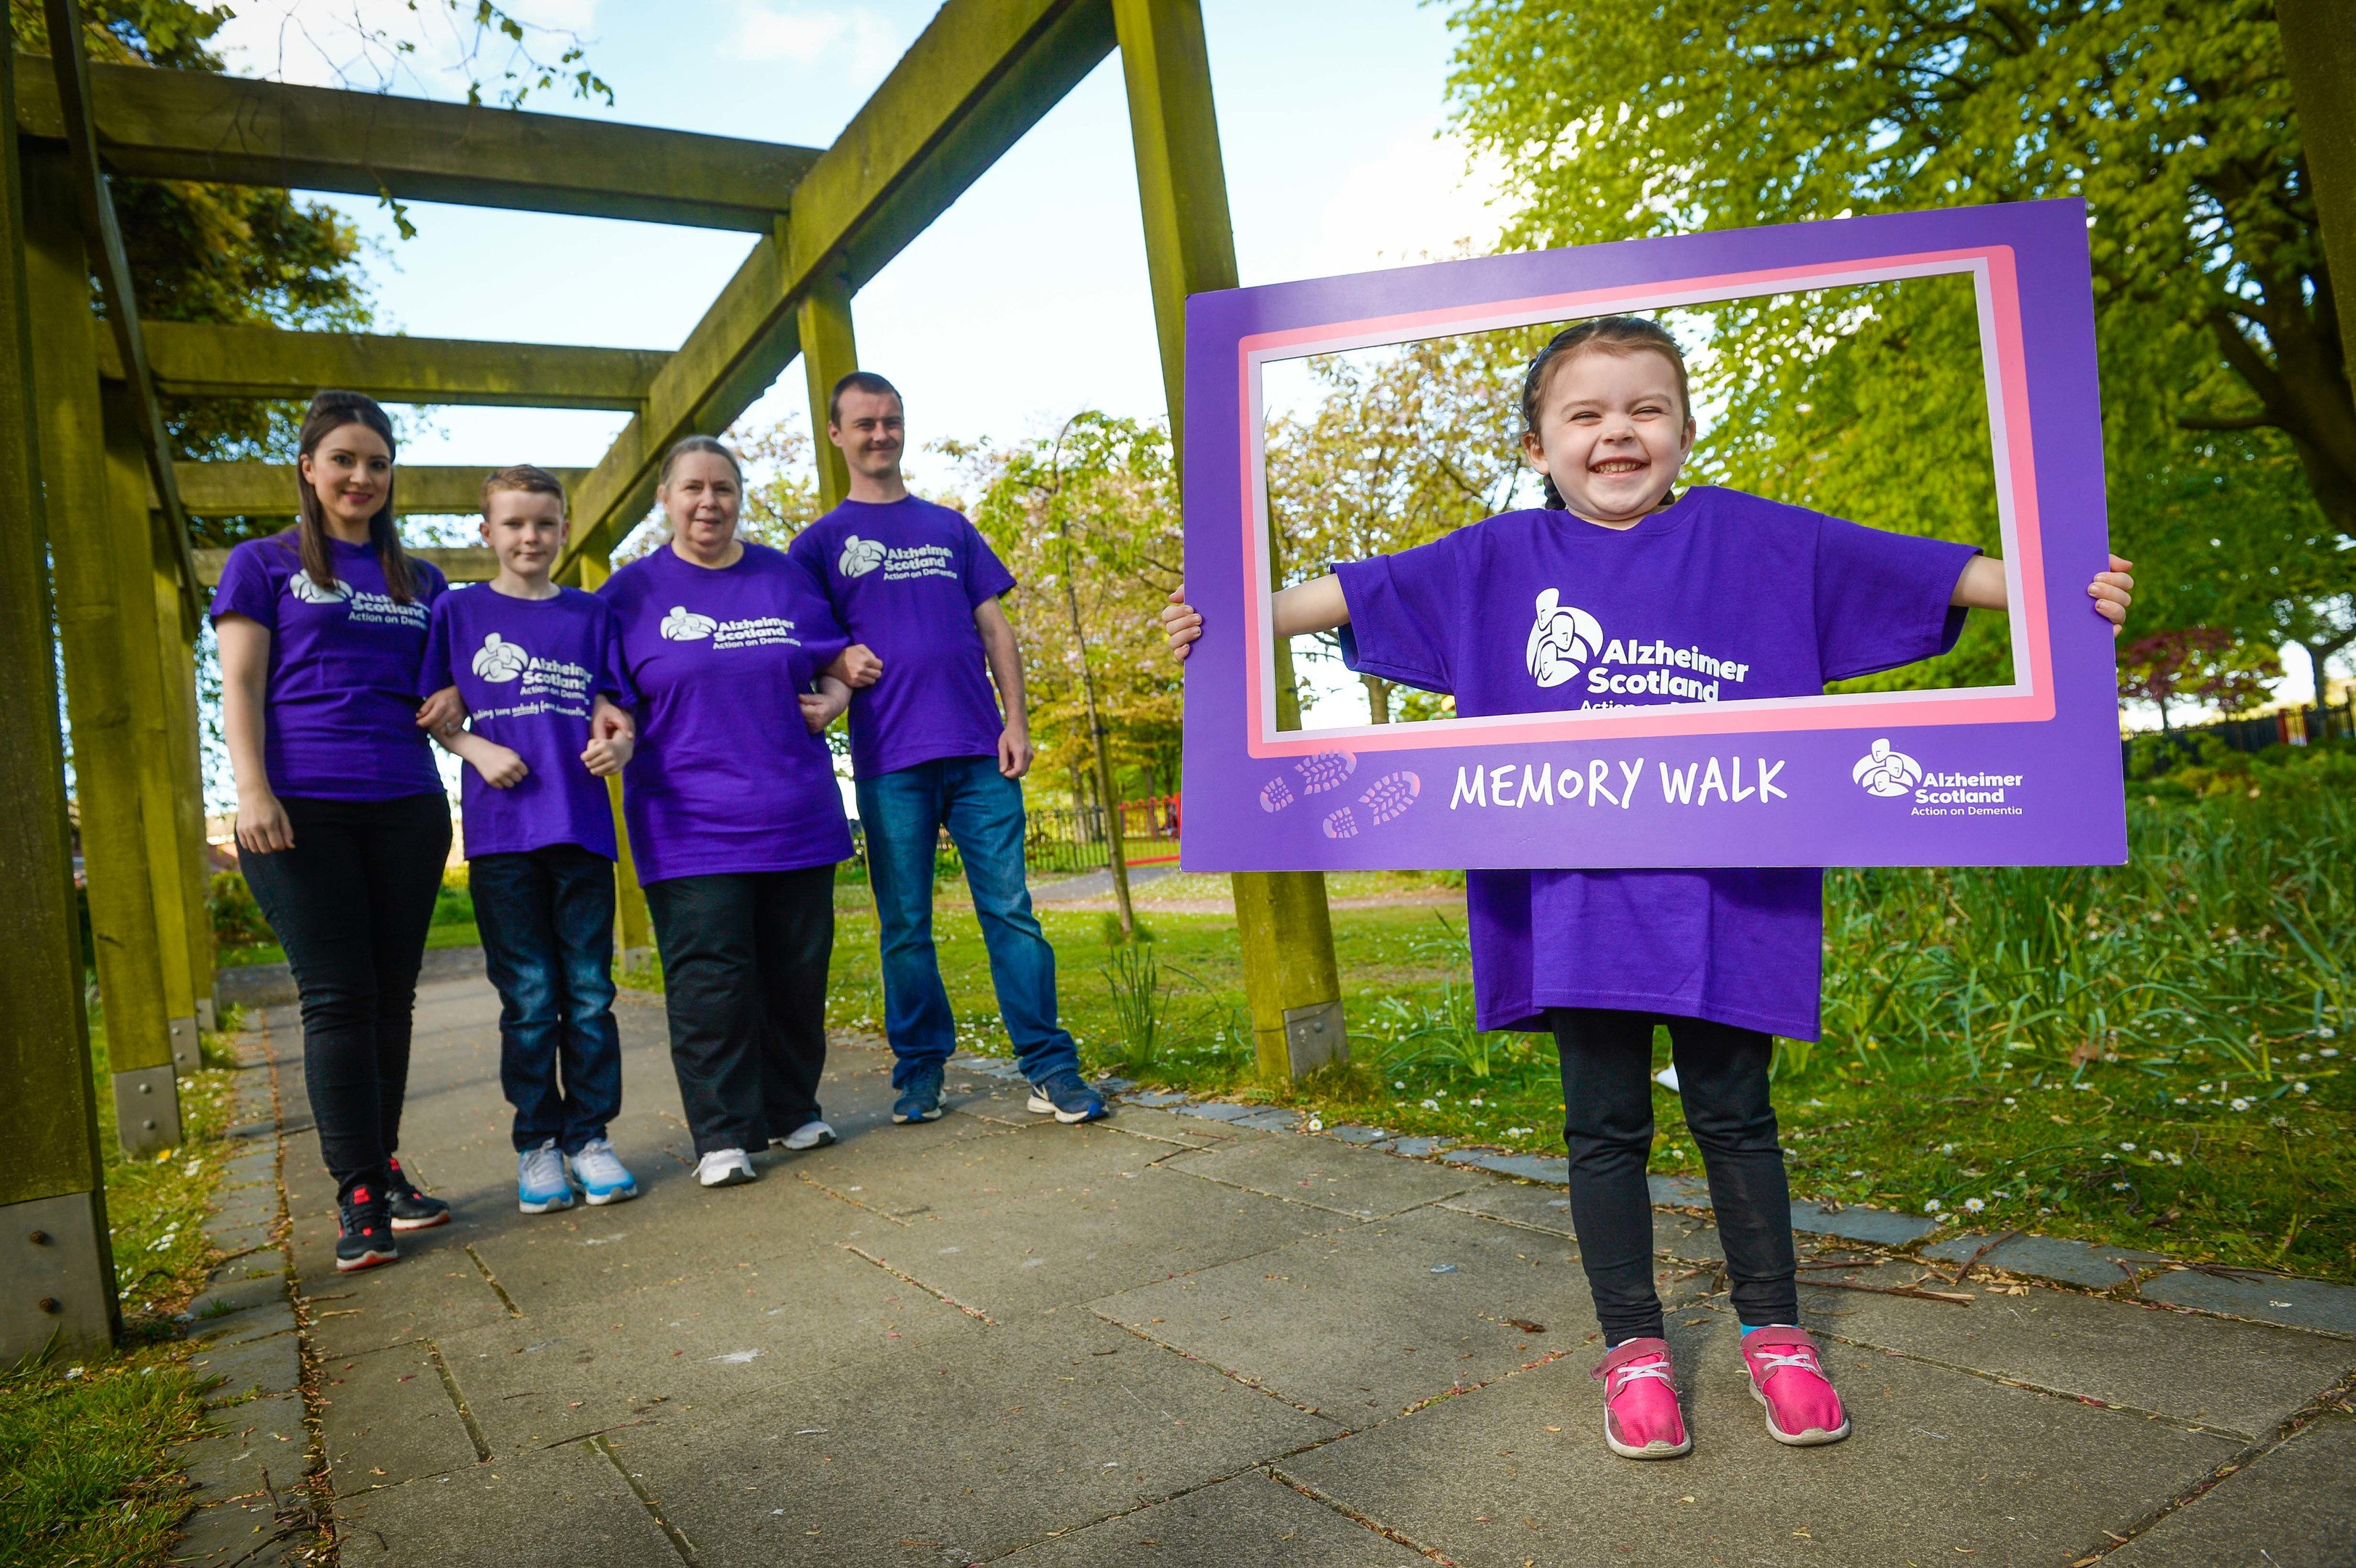 Alzheimer Scotland Memory Walks (Nick Ponty)